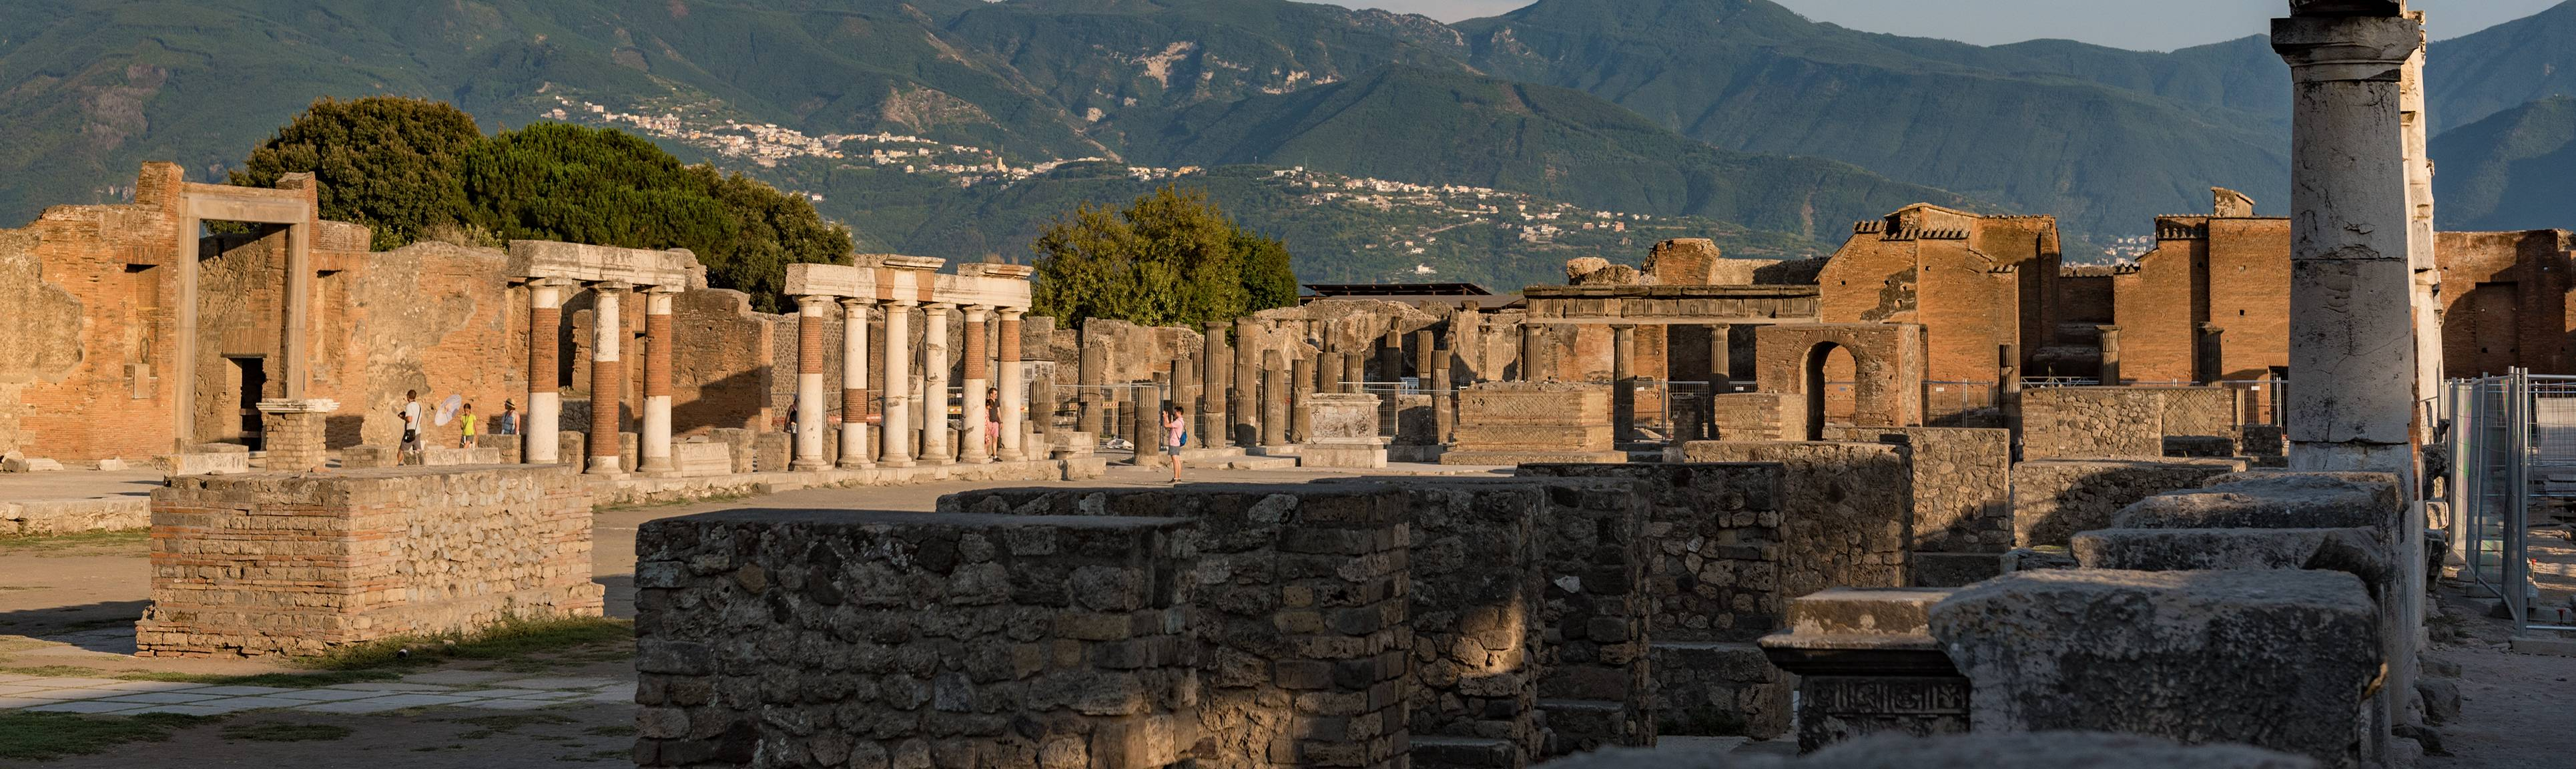 Ruins of buildings at Pompeii with Mt. Vesuvius in the background